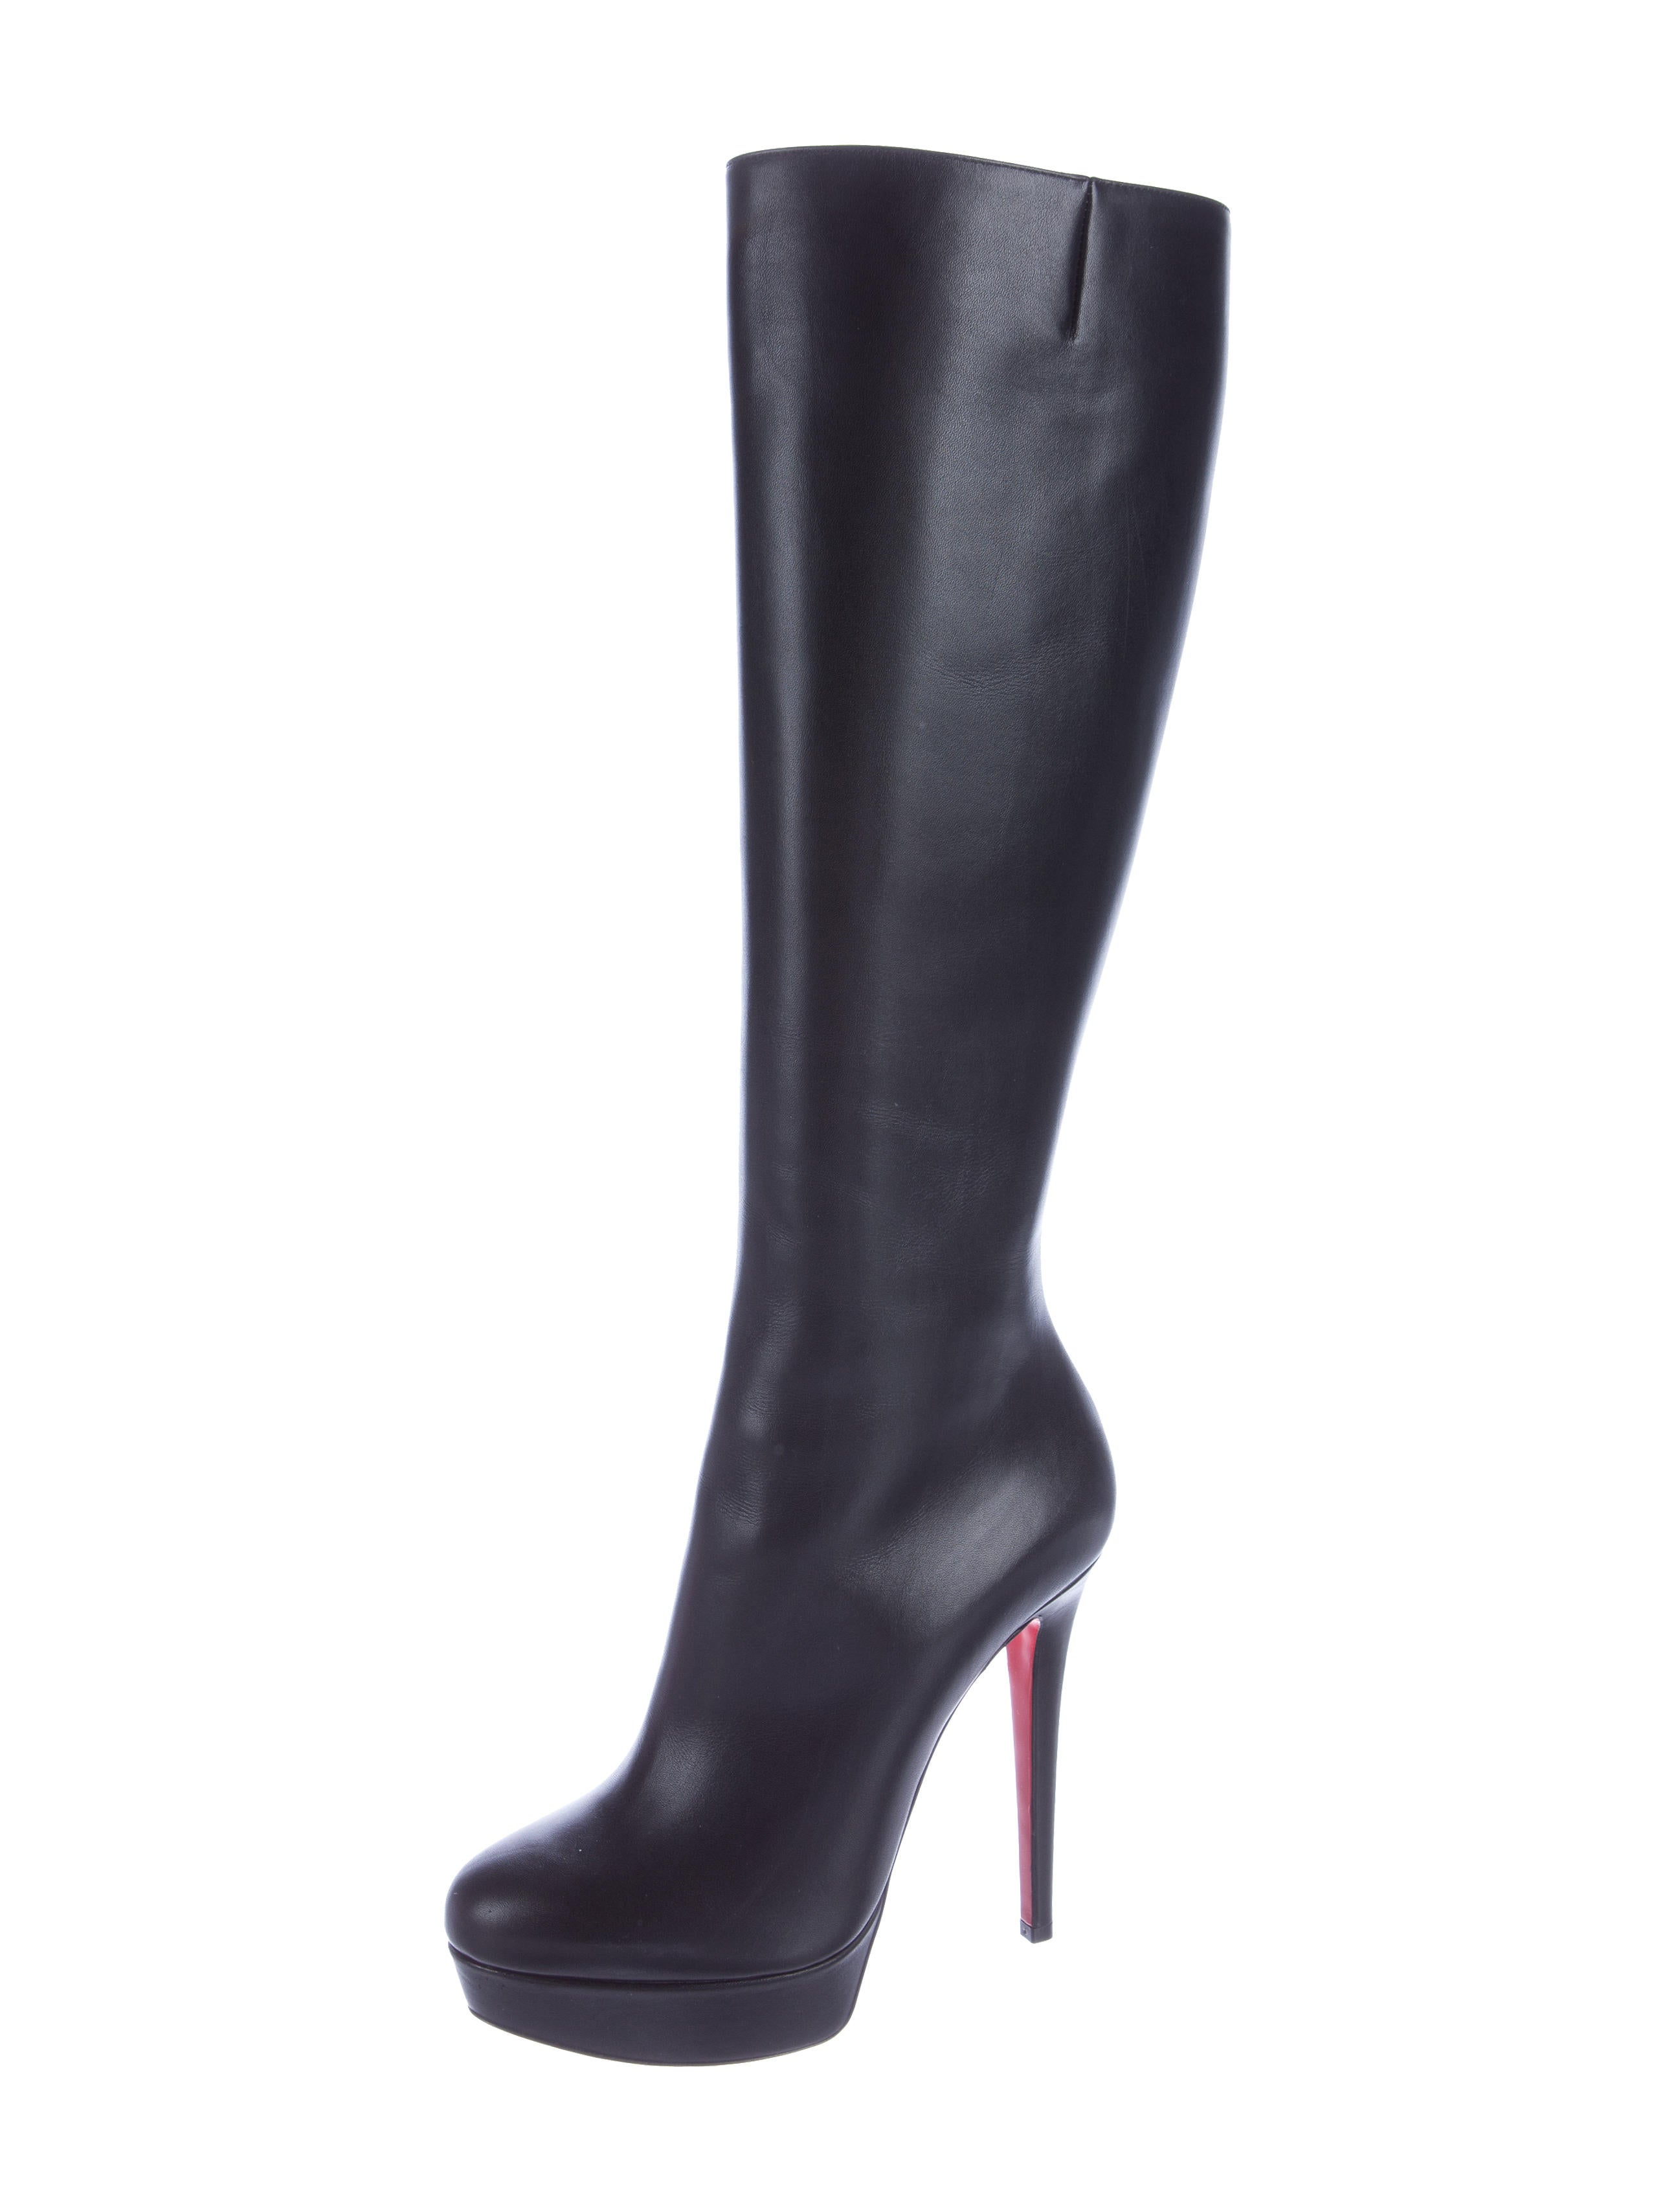 christian louboutin leather platform boots shoes